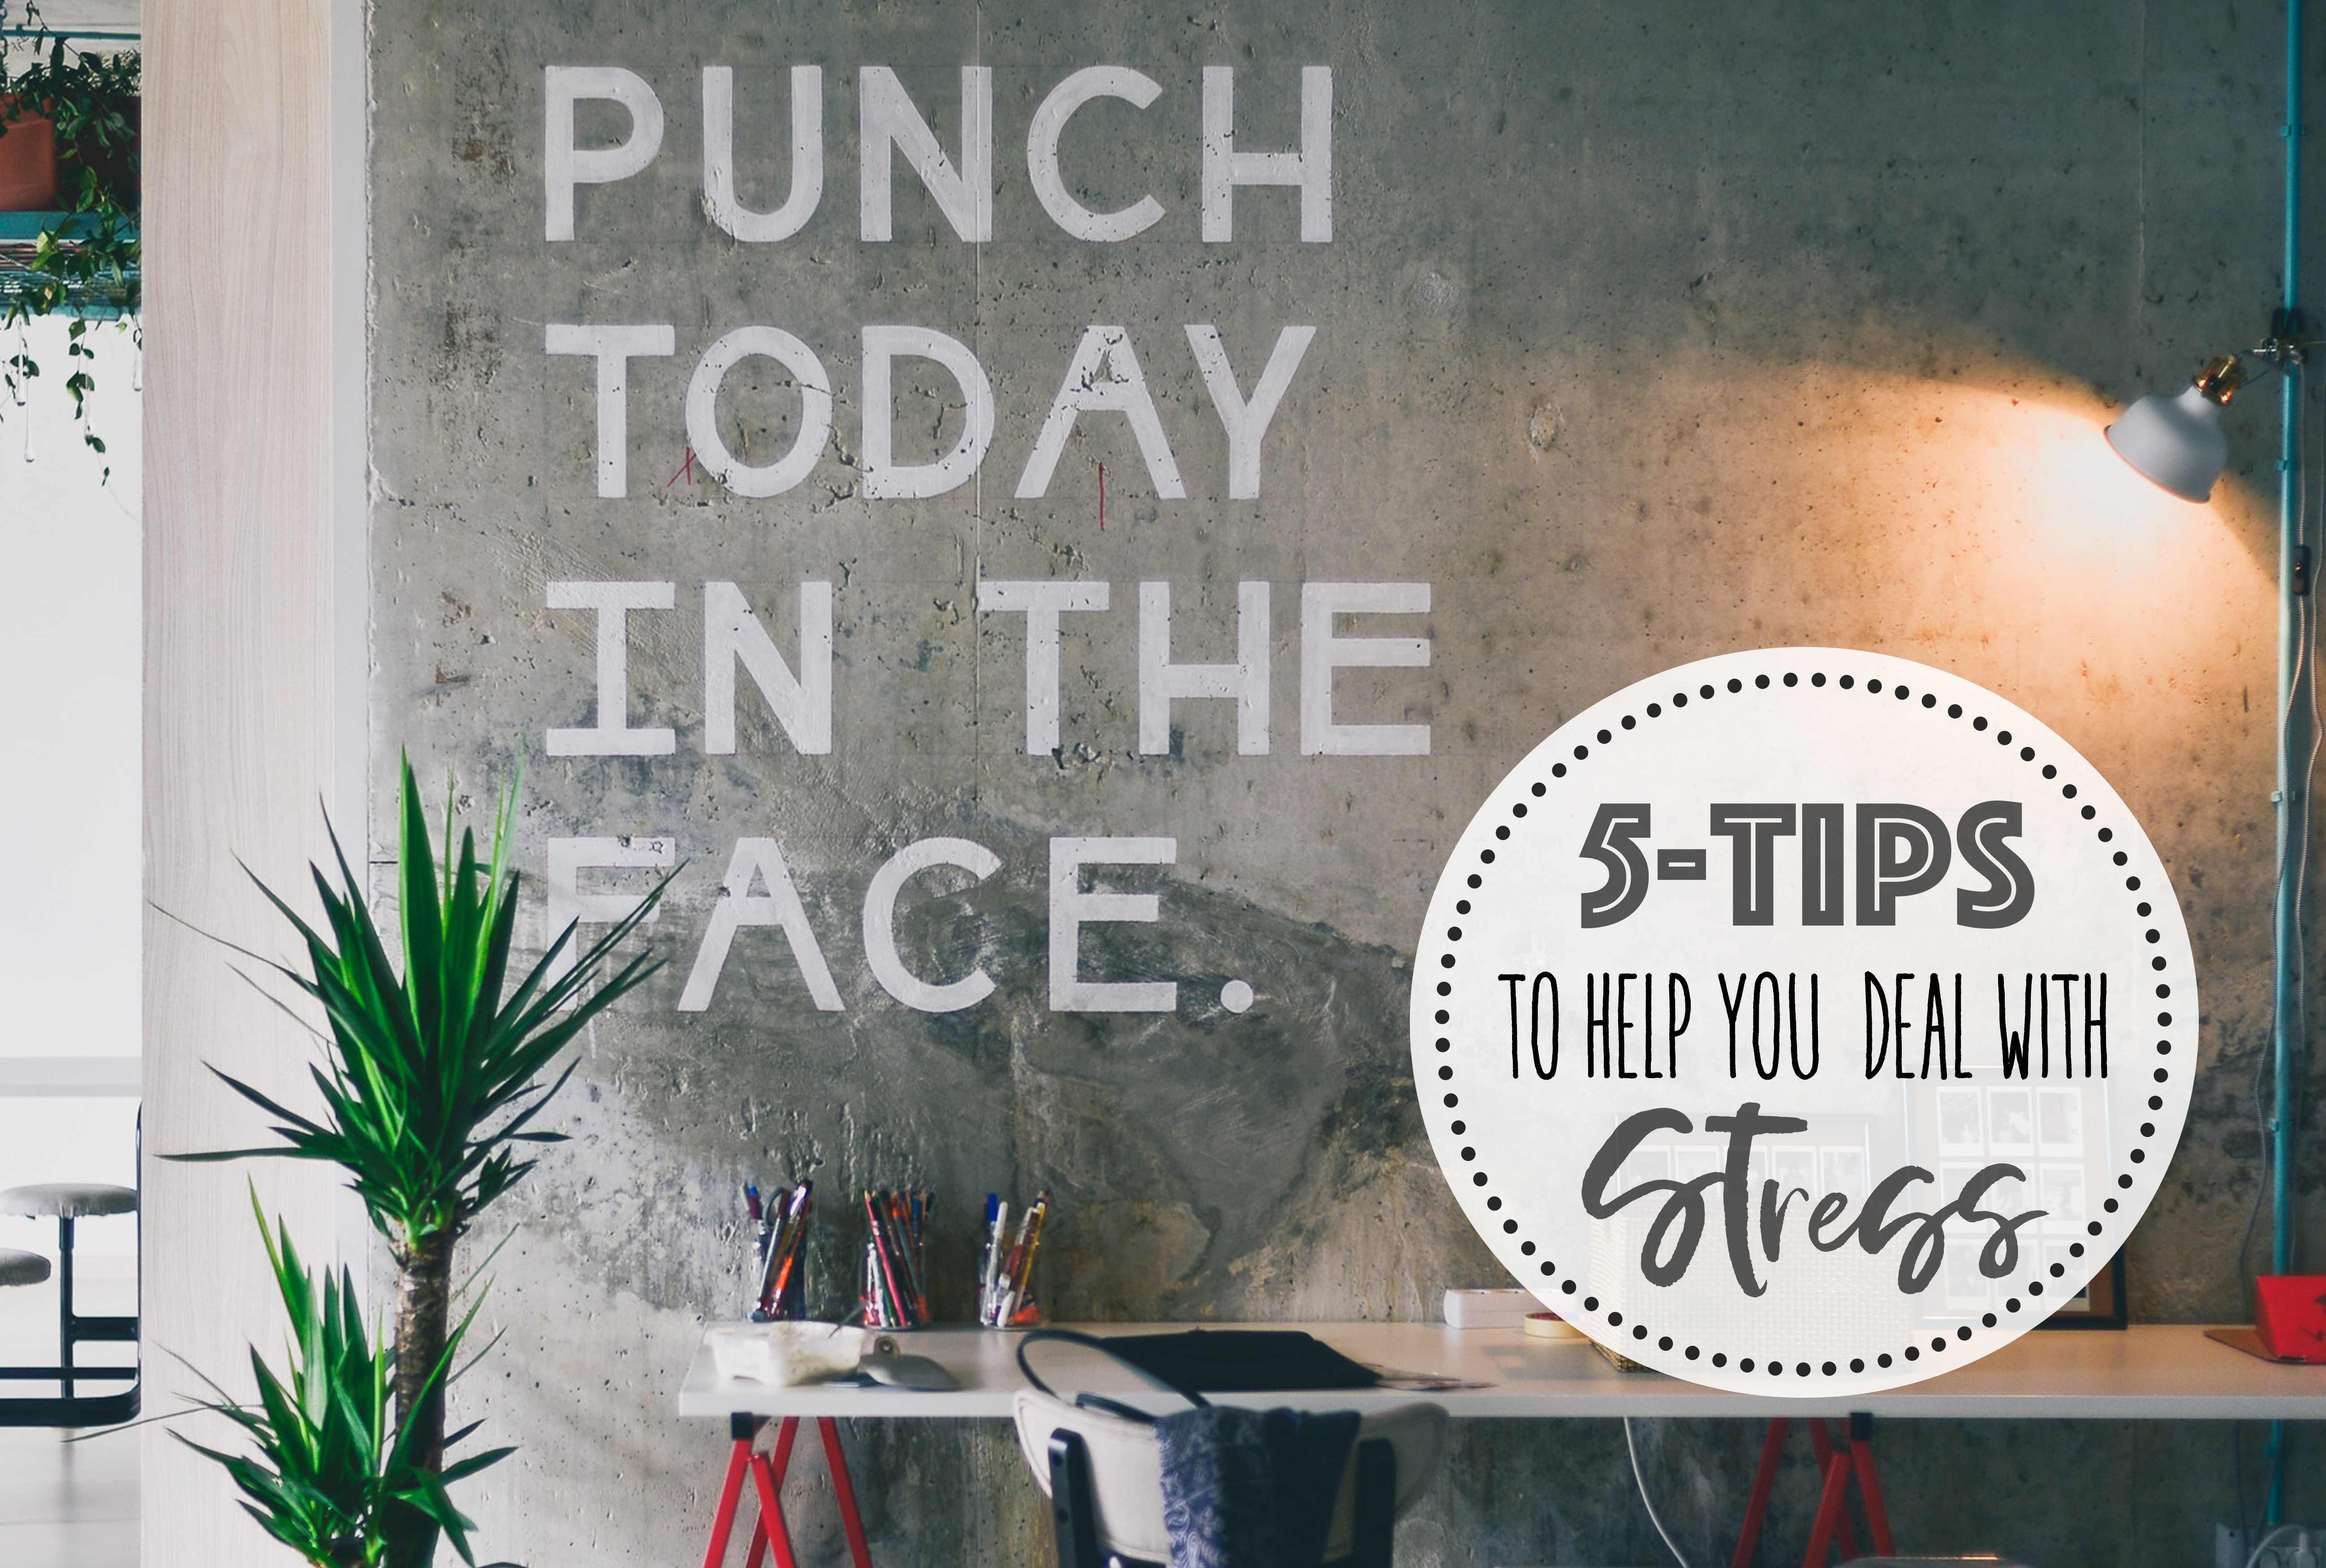 5 Tips to Help You Deal With Stress